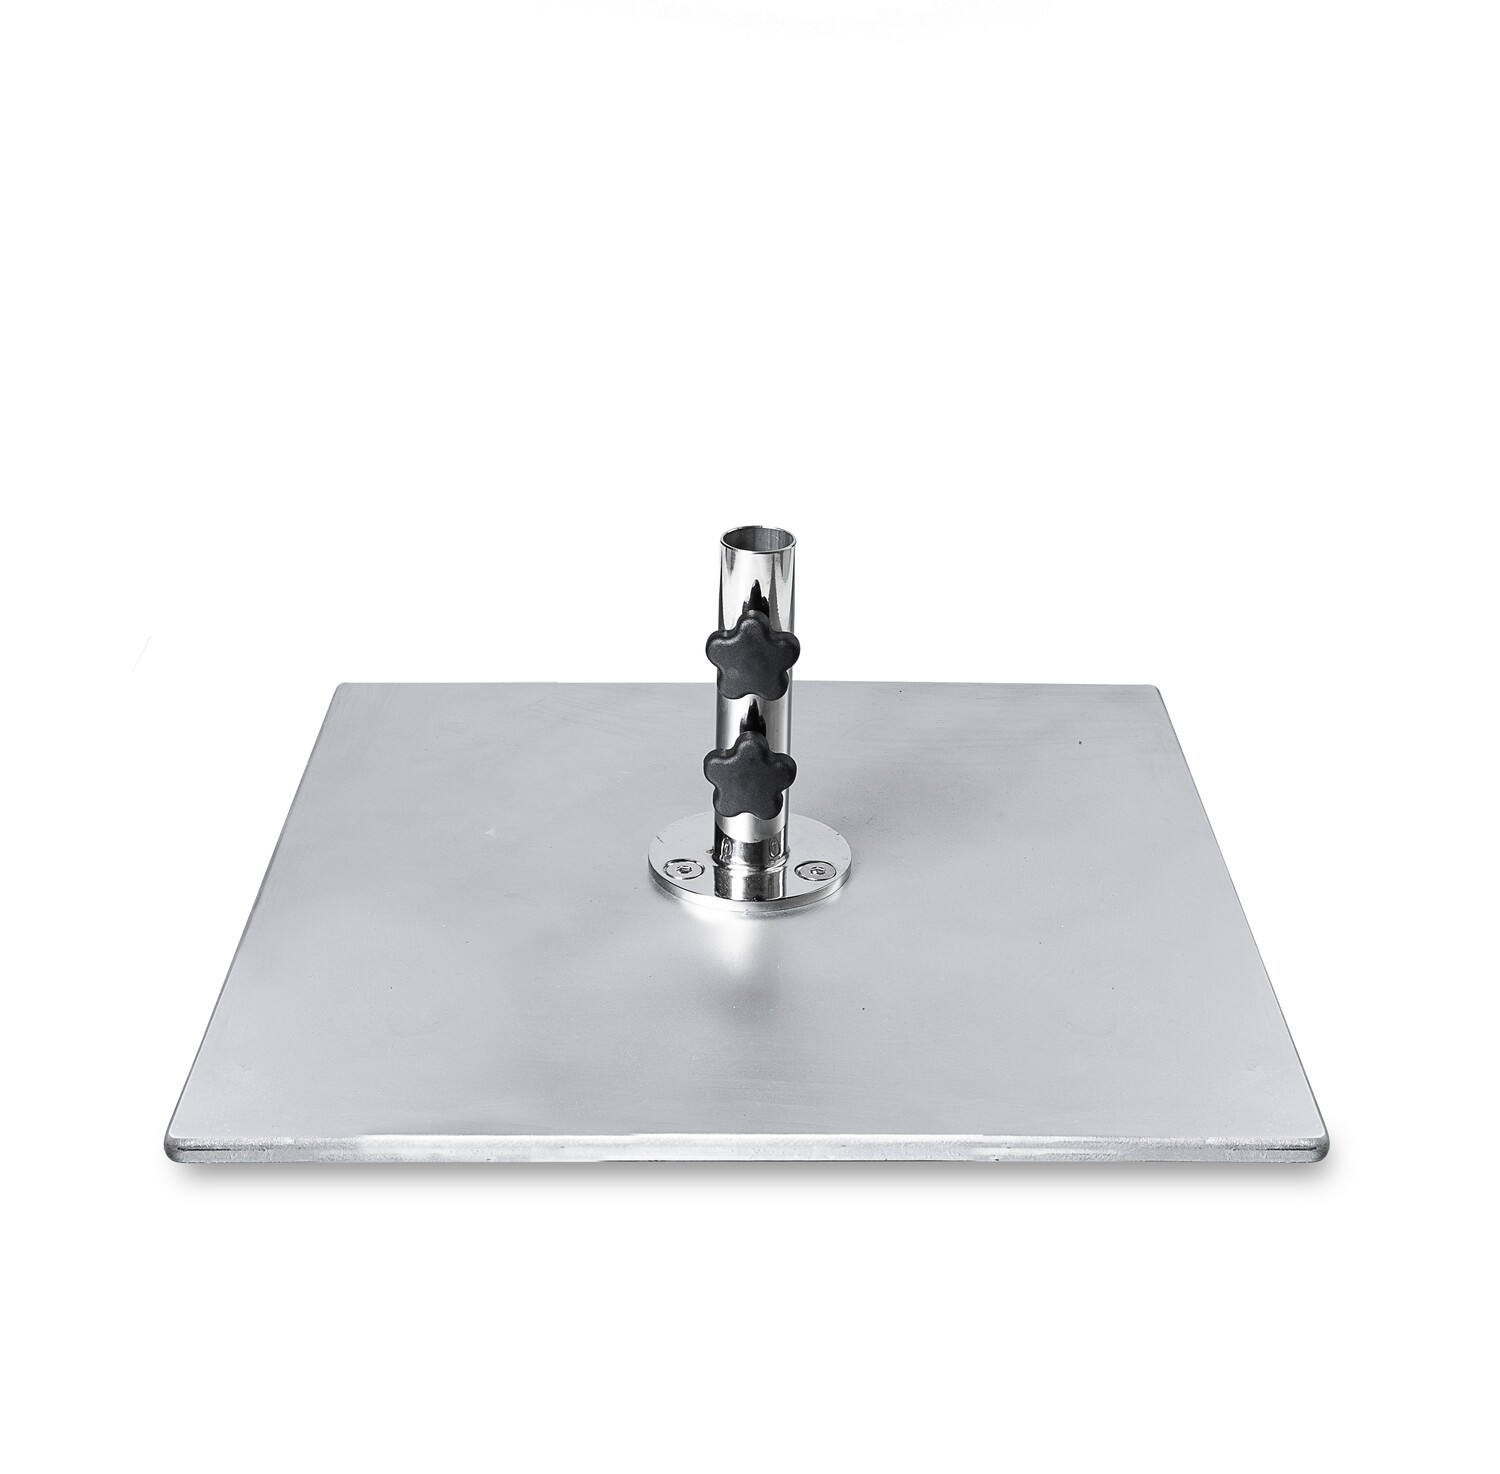 Galvanized Steel Plate Square Base   100 LBS